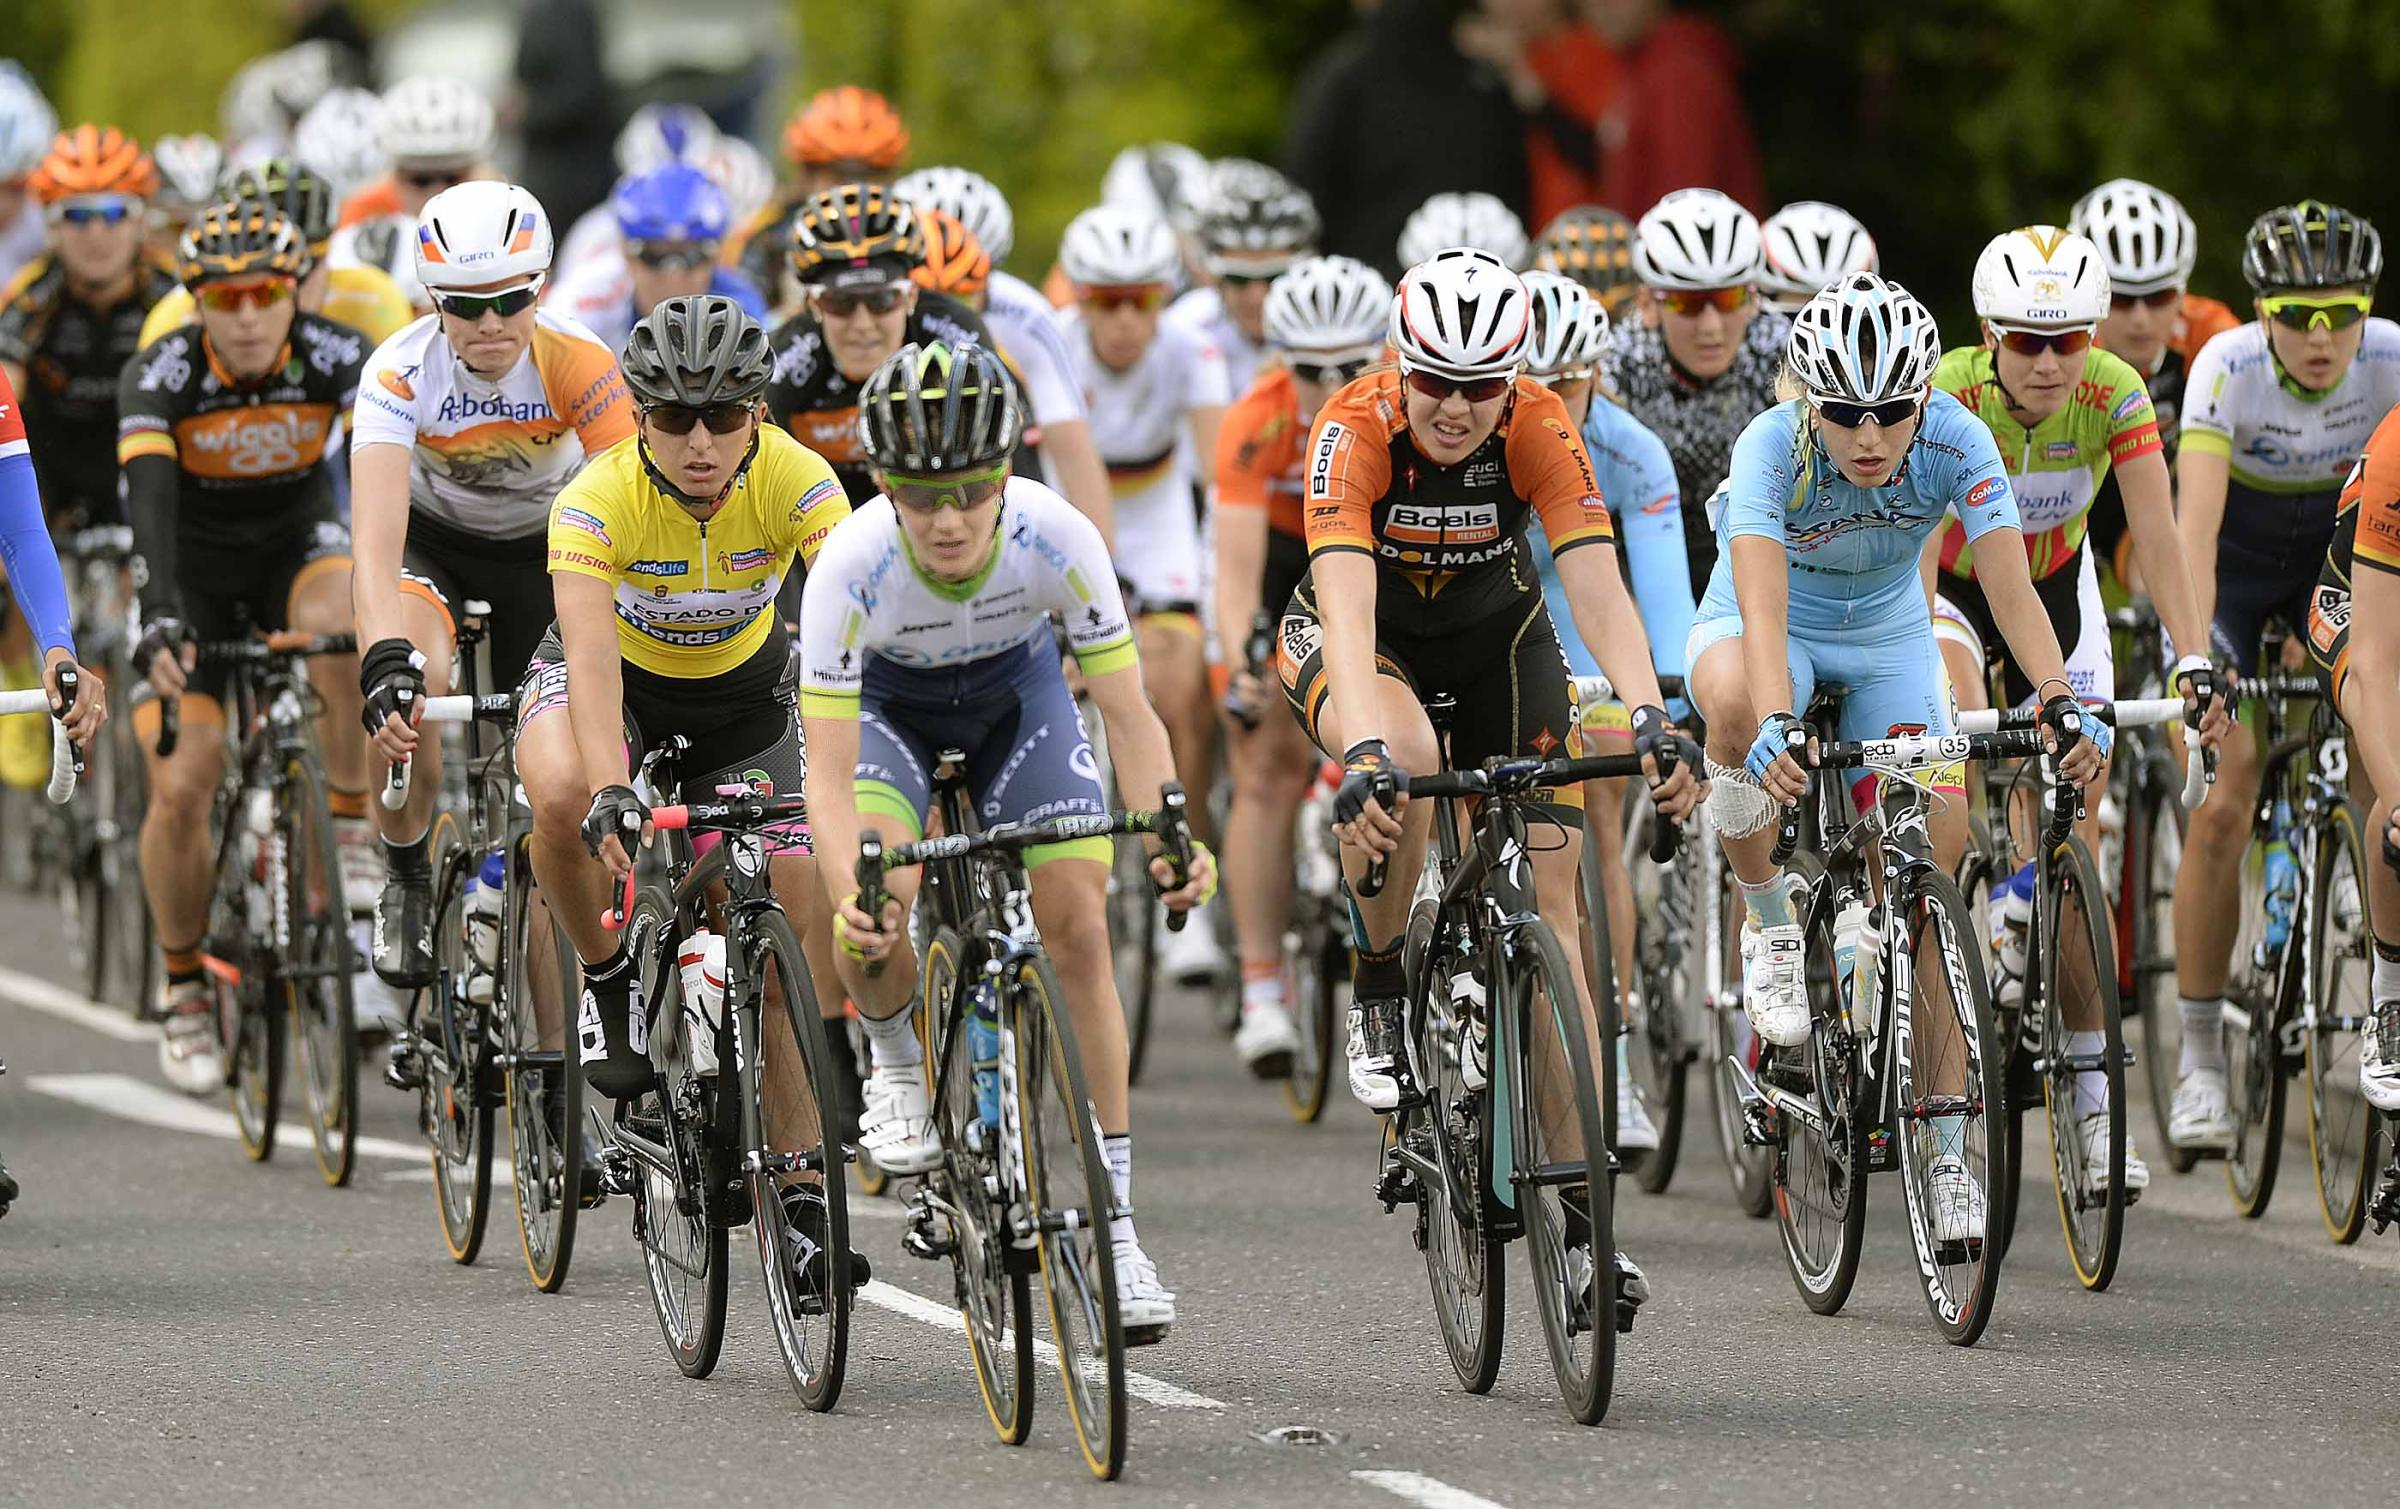 Women's Tour comes to Manningtree